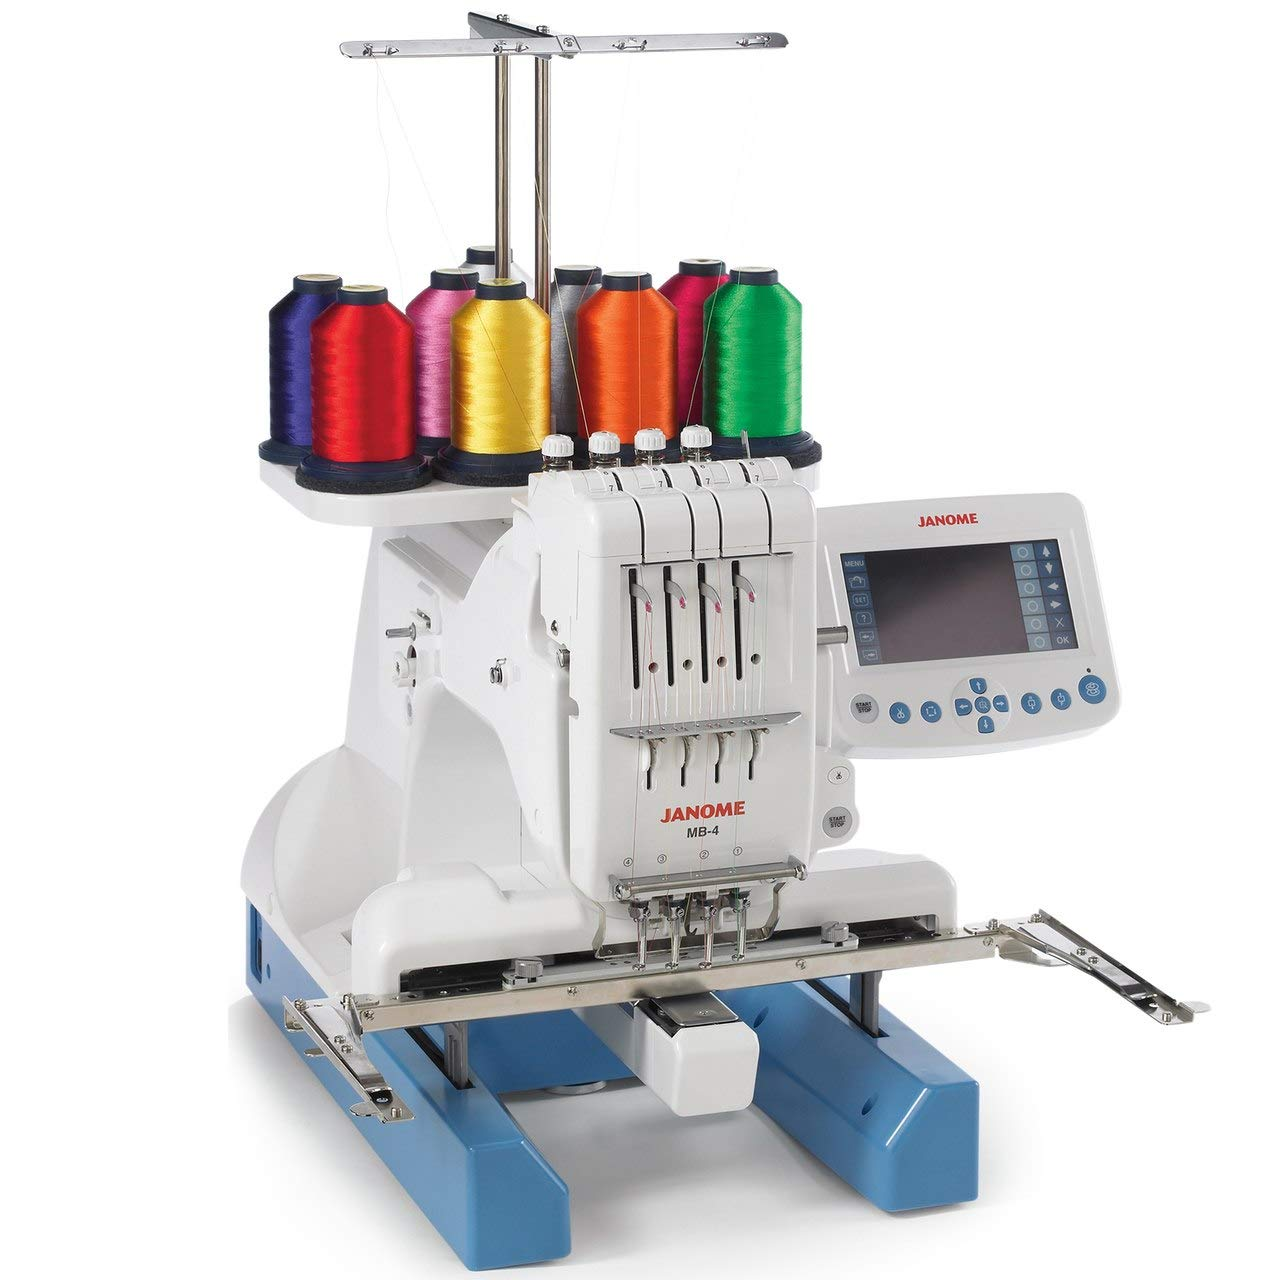 Janome MB-4N 4 Needle Embroidery Machine Includes Bonus Accessories